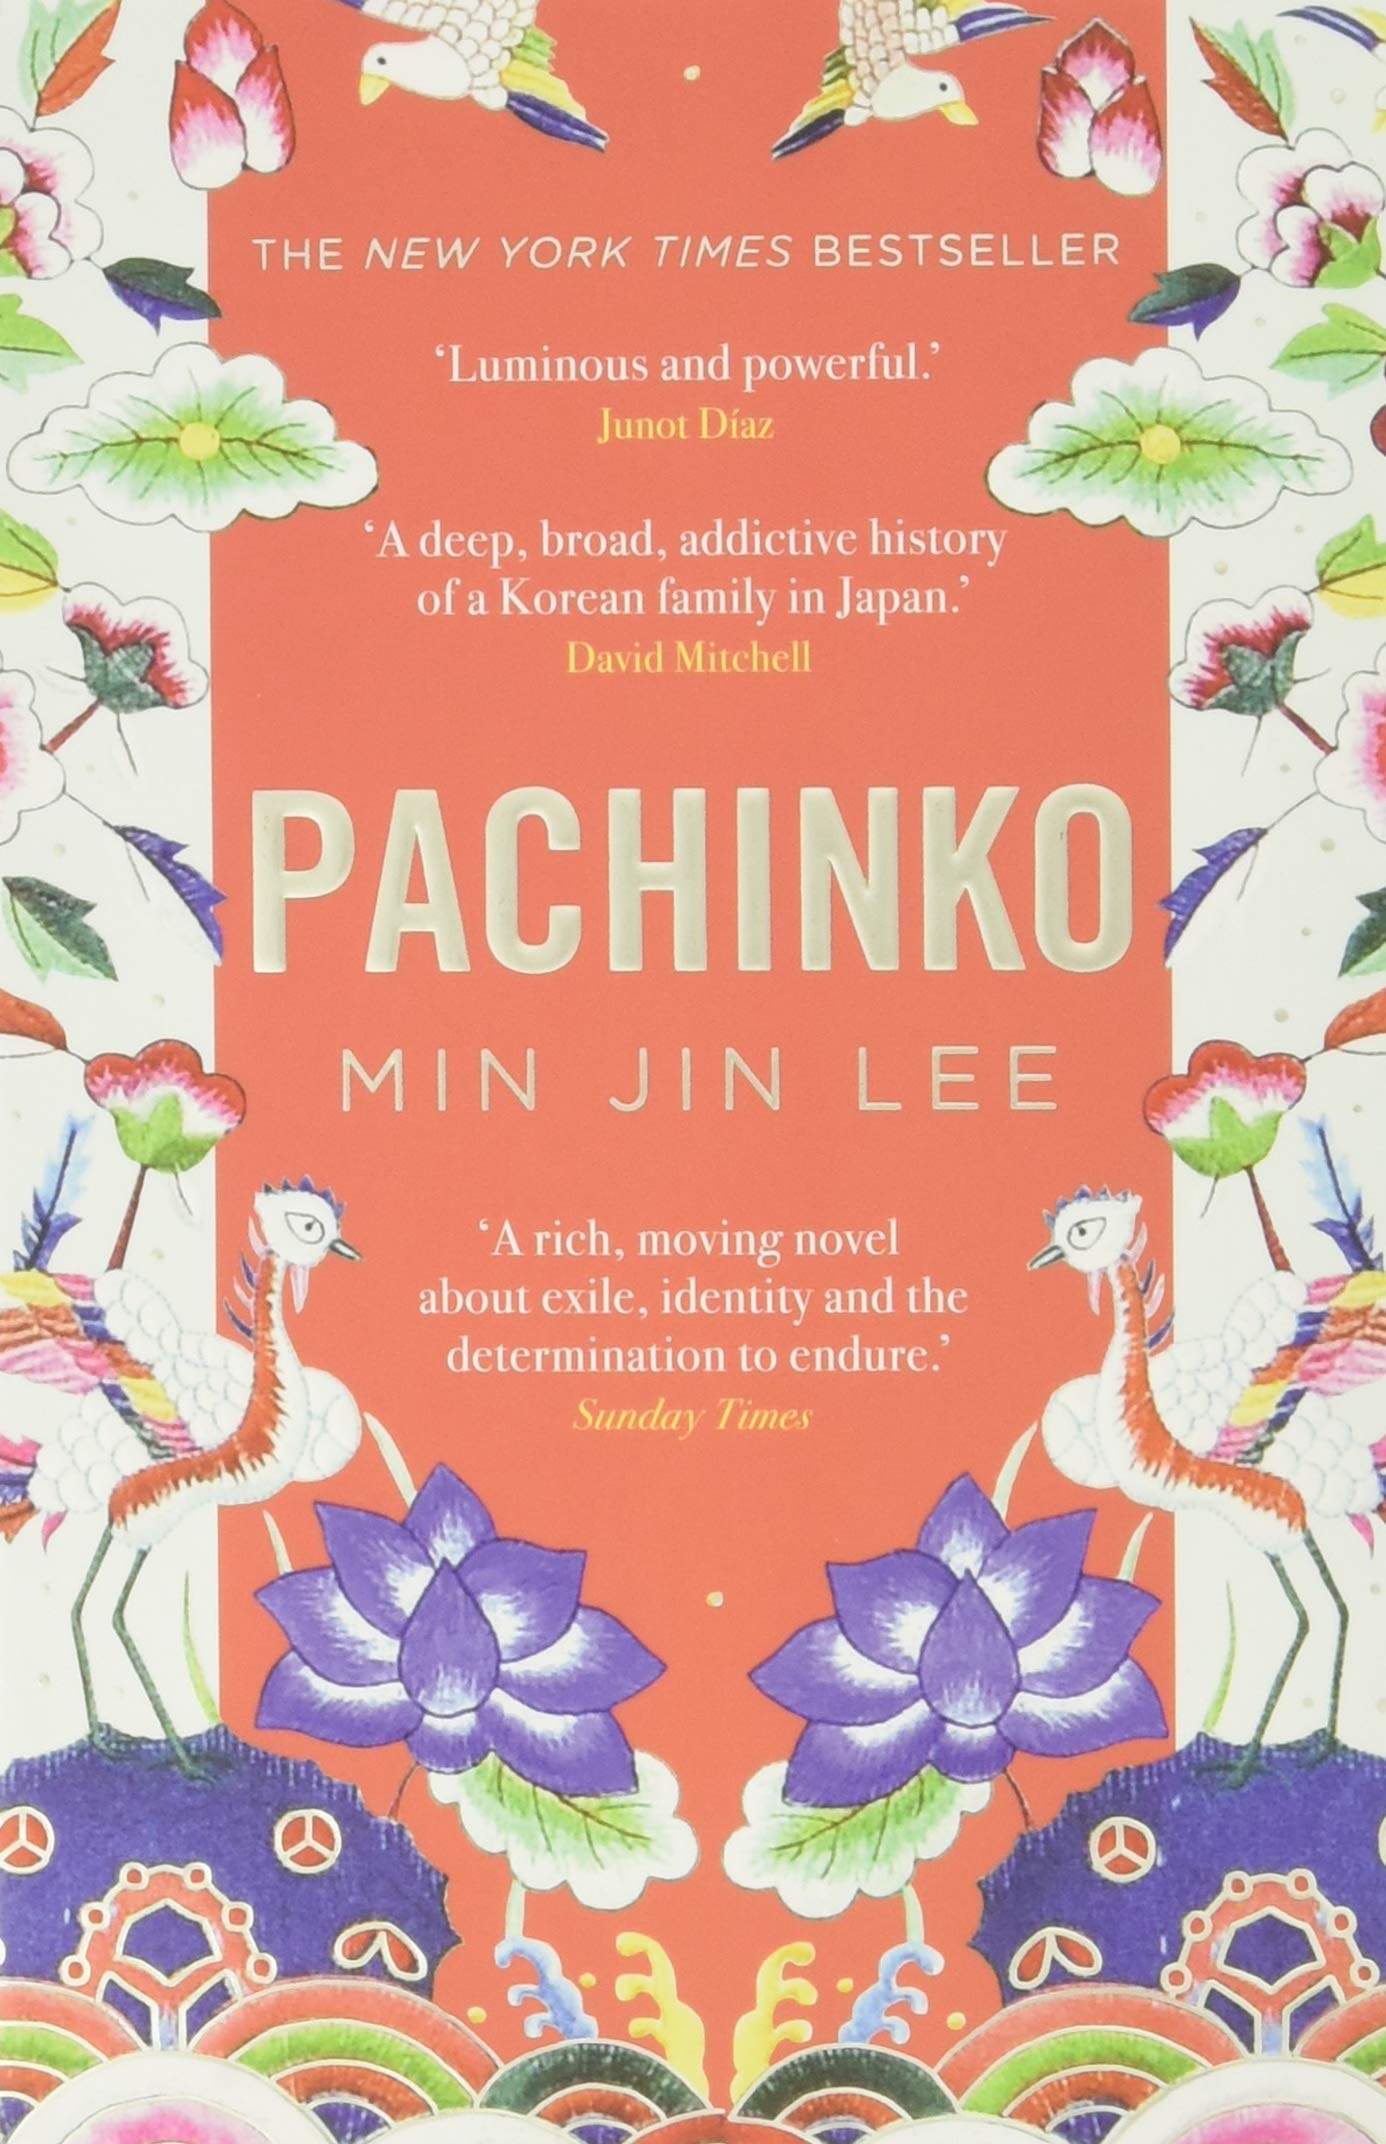 Buy Pachinko: The New York Times Bestseller Book Online at Low Prices in India | Pachinko: The New York Times Bestseller Reviews & Ratings - Amazon.in